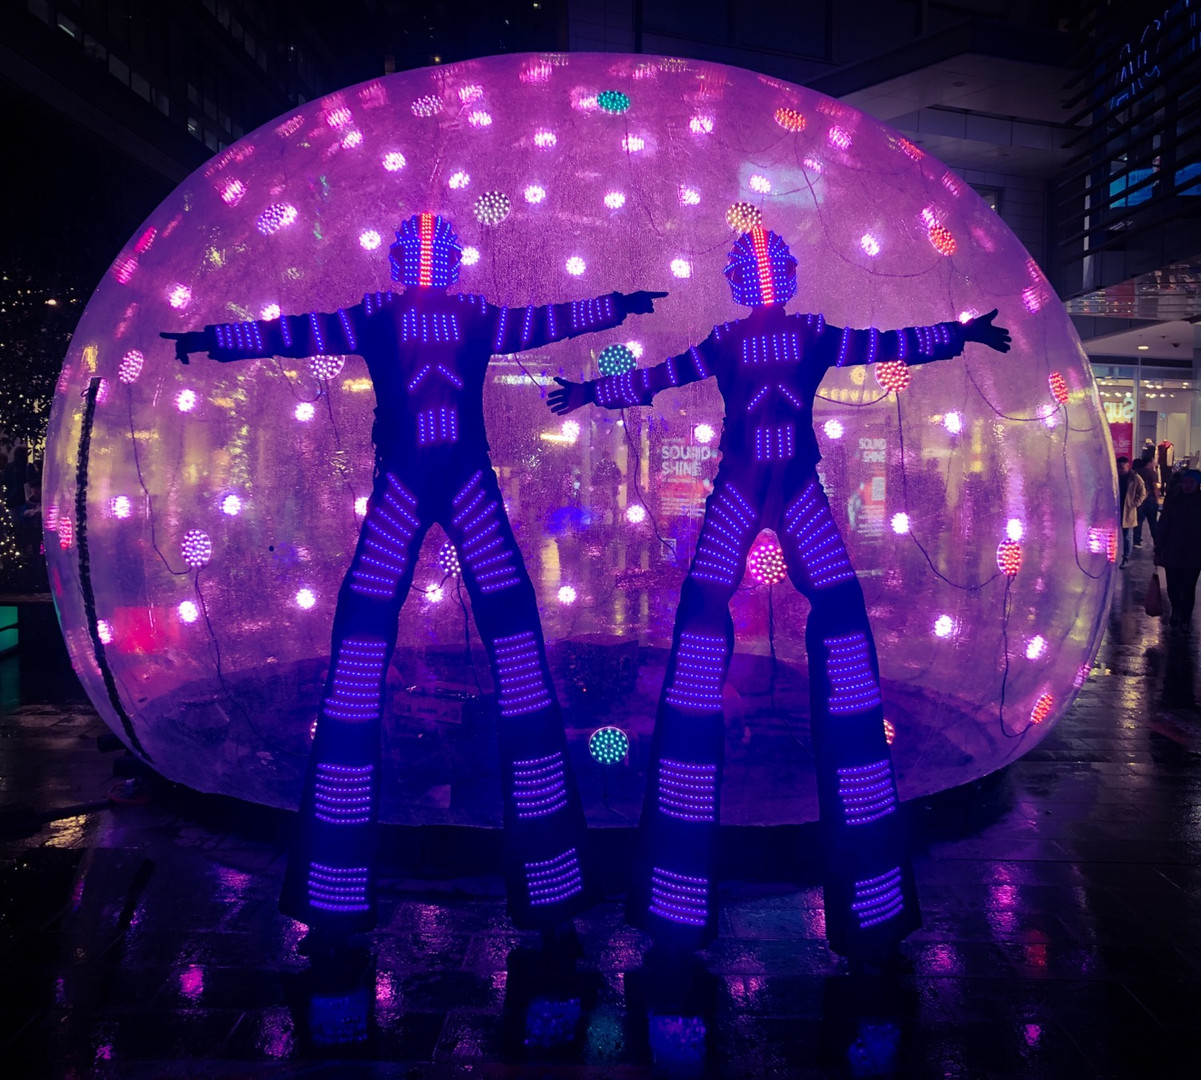 Led Robot Stilwalkers at Vivid Festival